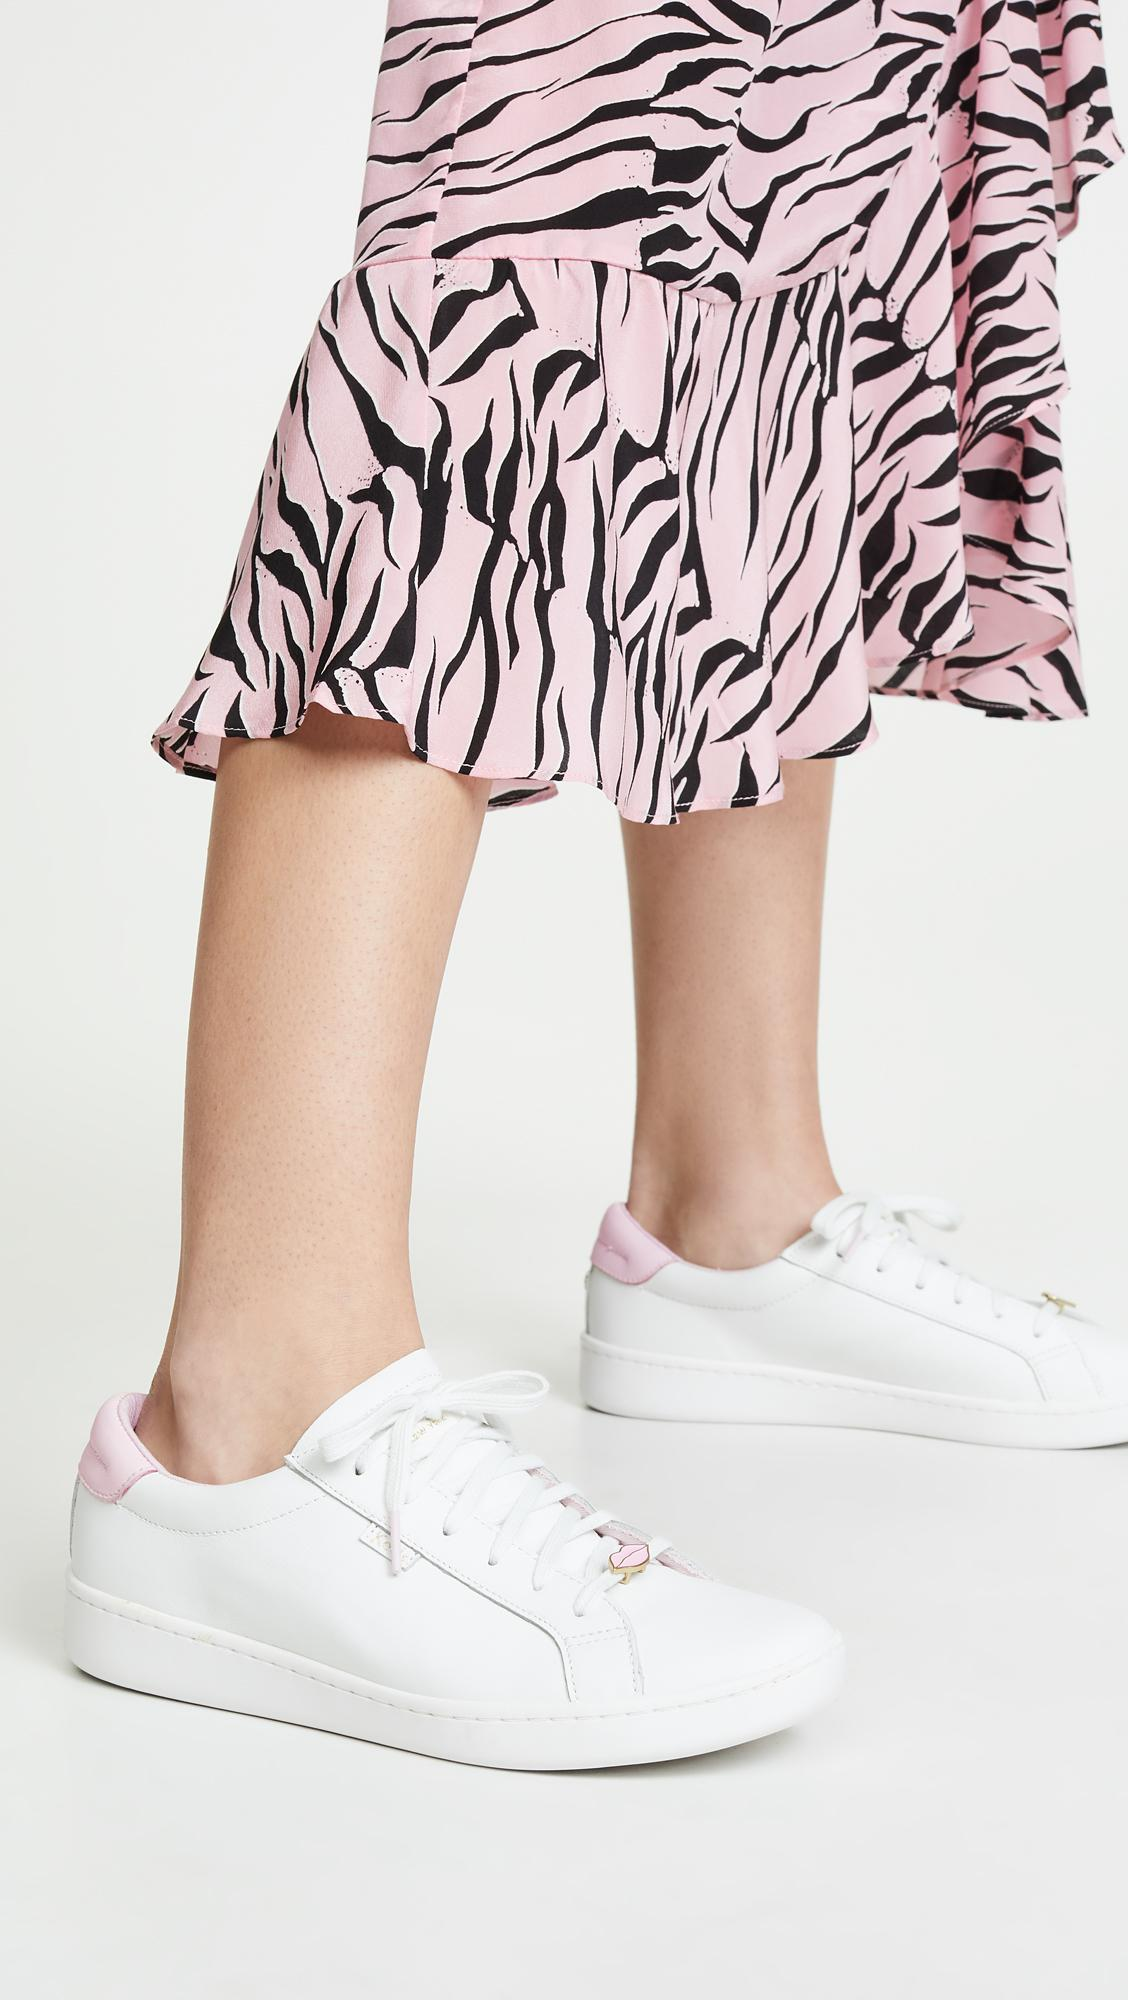 dff4183ec2934 Keds - White X Kate Spade Ace Lips hearts Sneakers - Lyst. View fullscreen